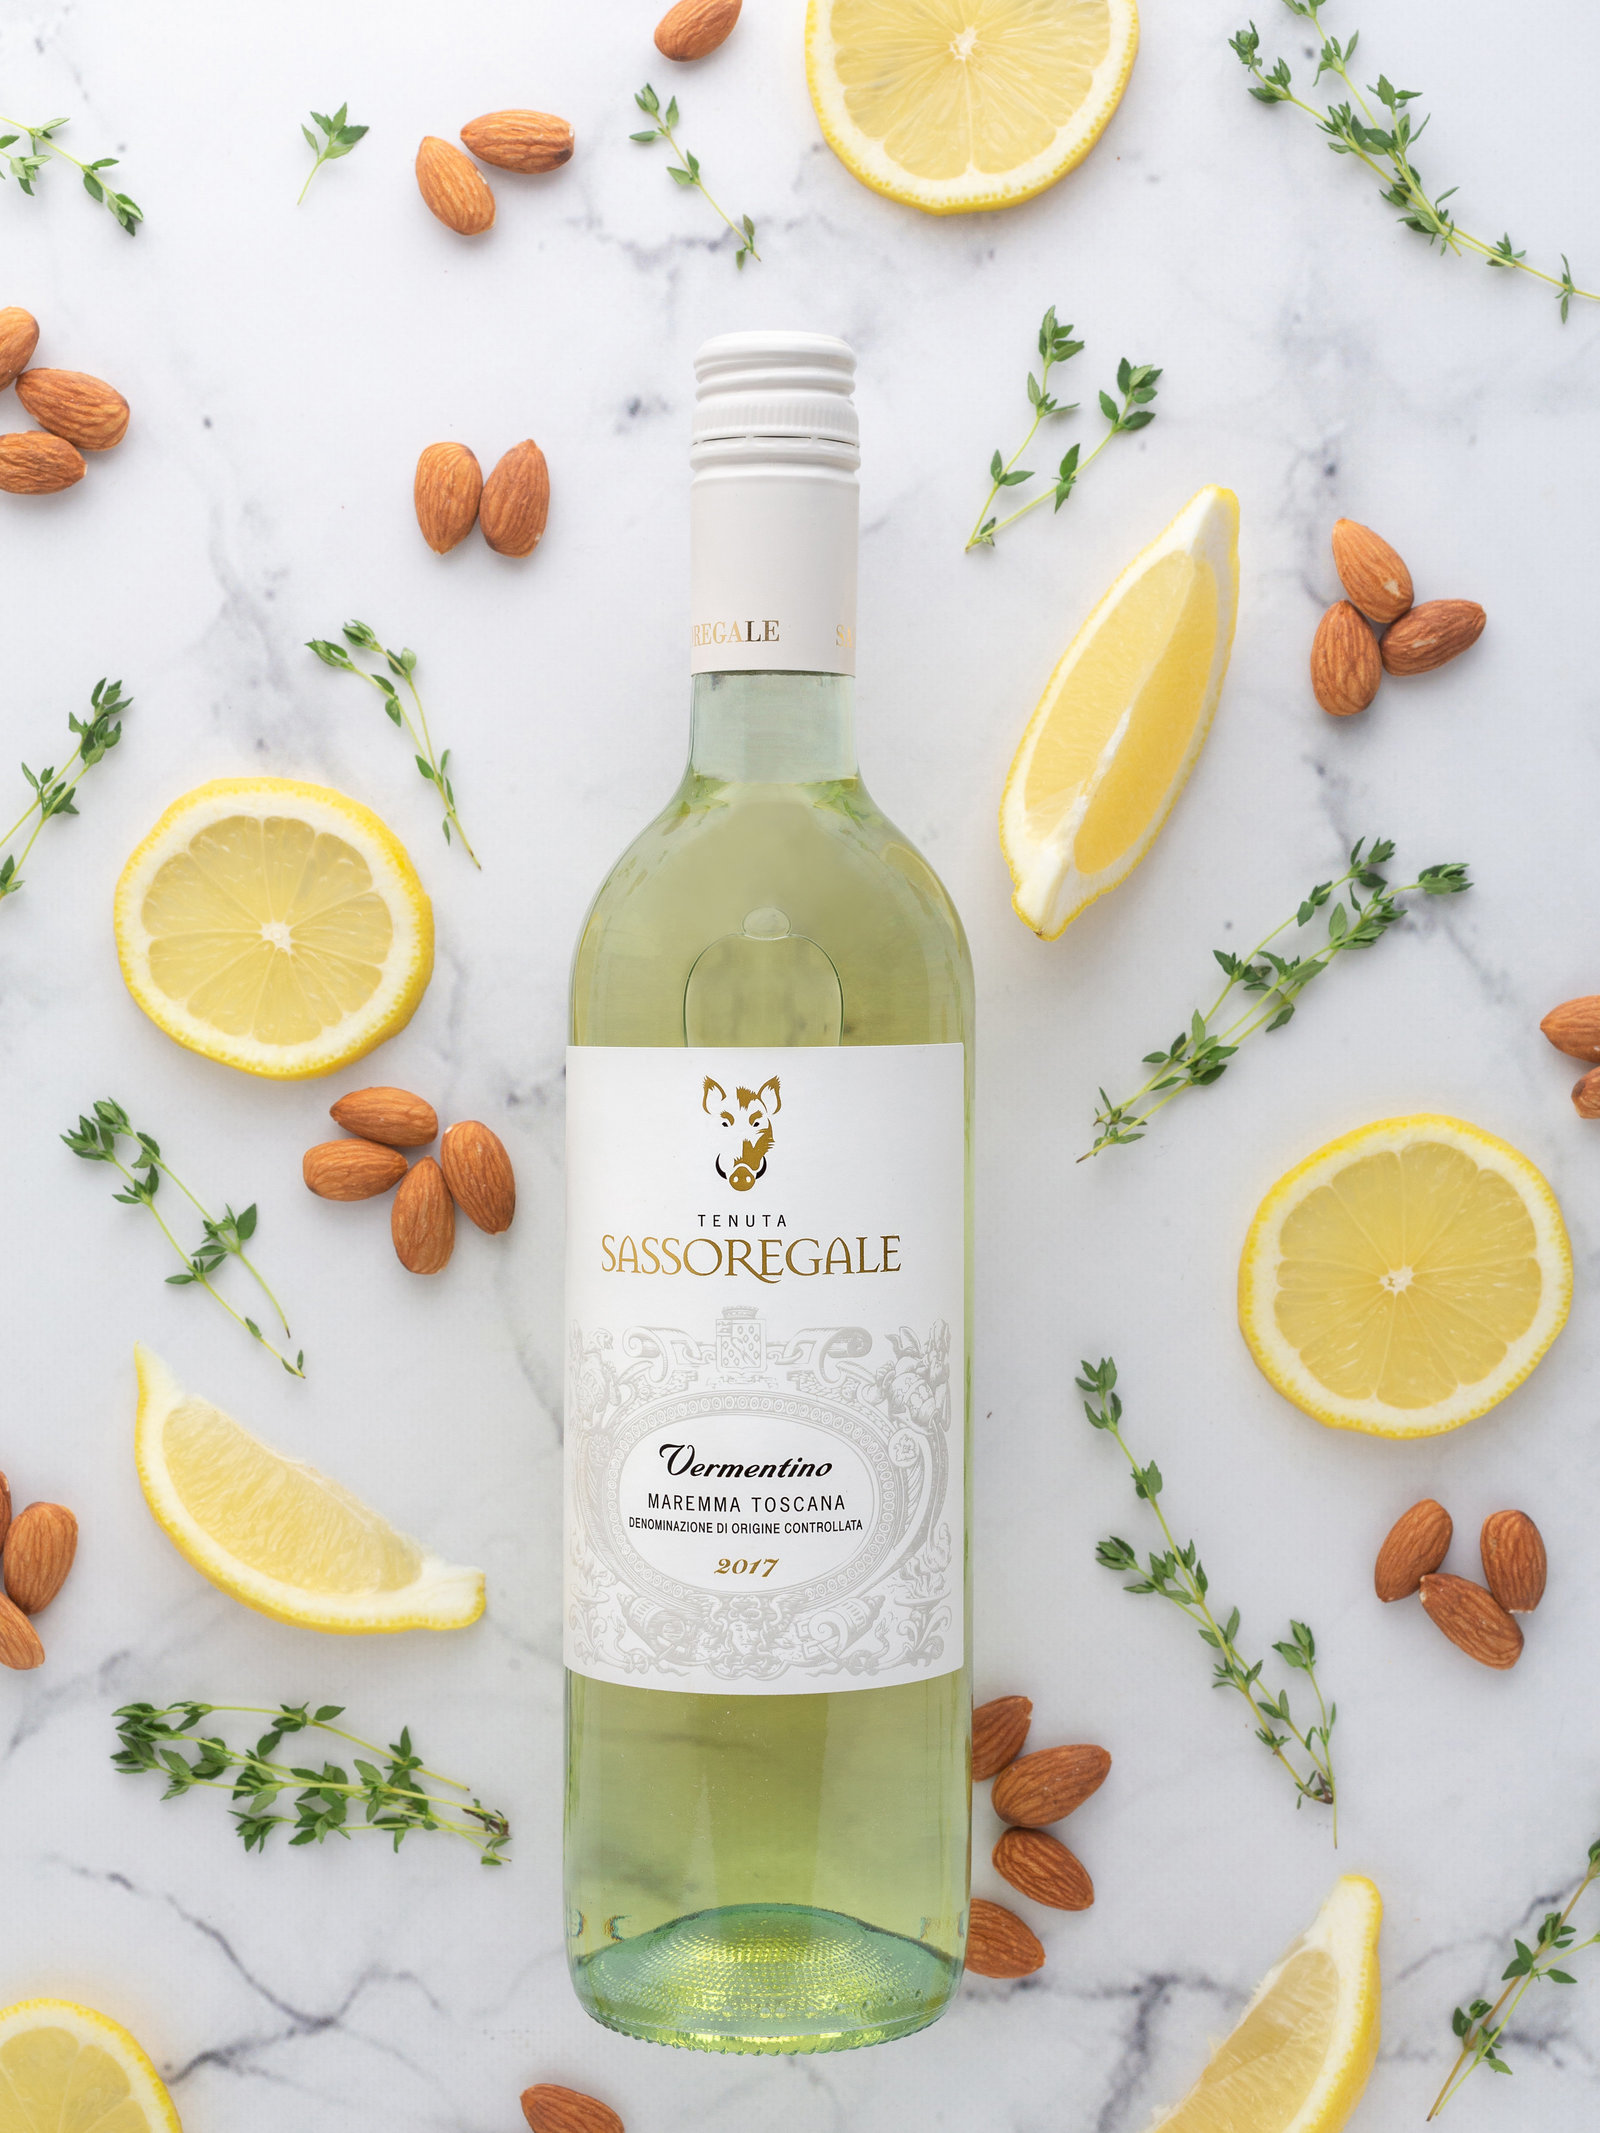 Santa Margherita - Vermentino - Product Photography - Frenchly - 4-2